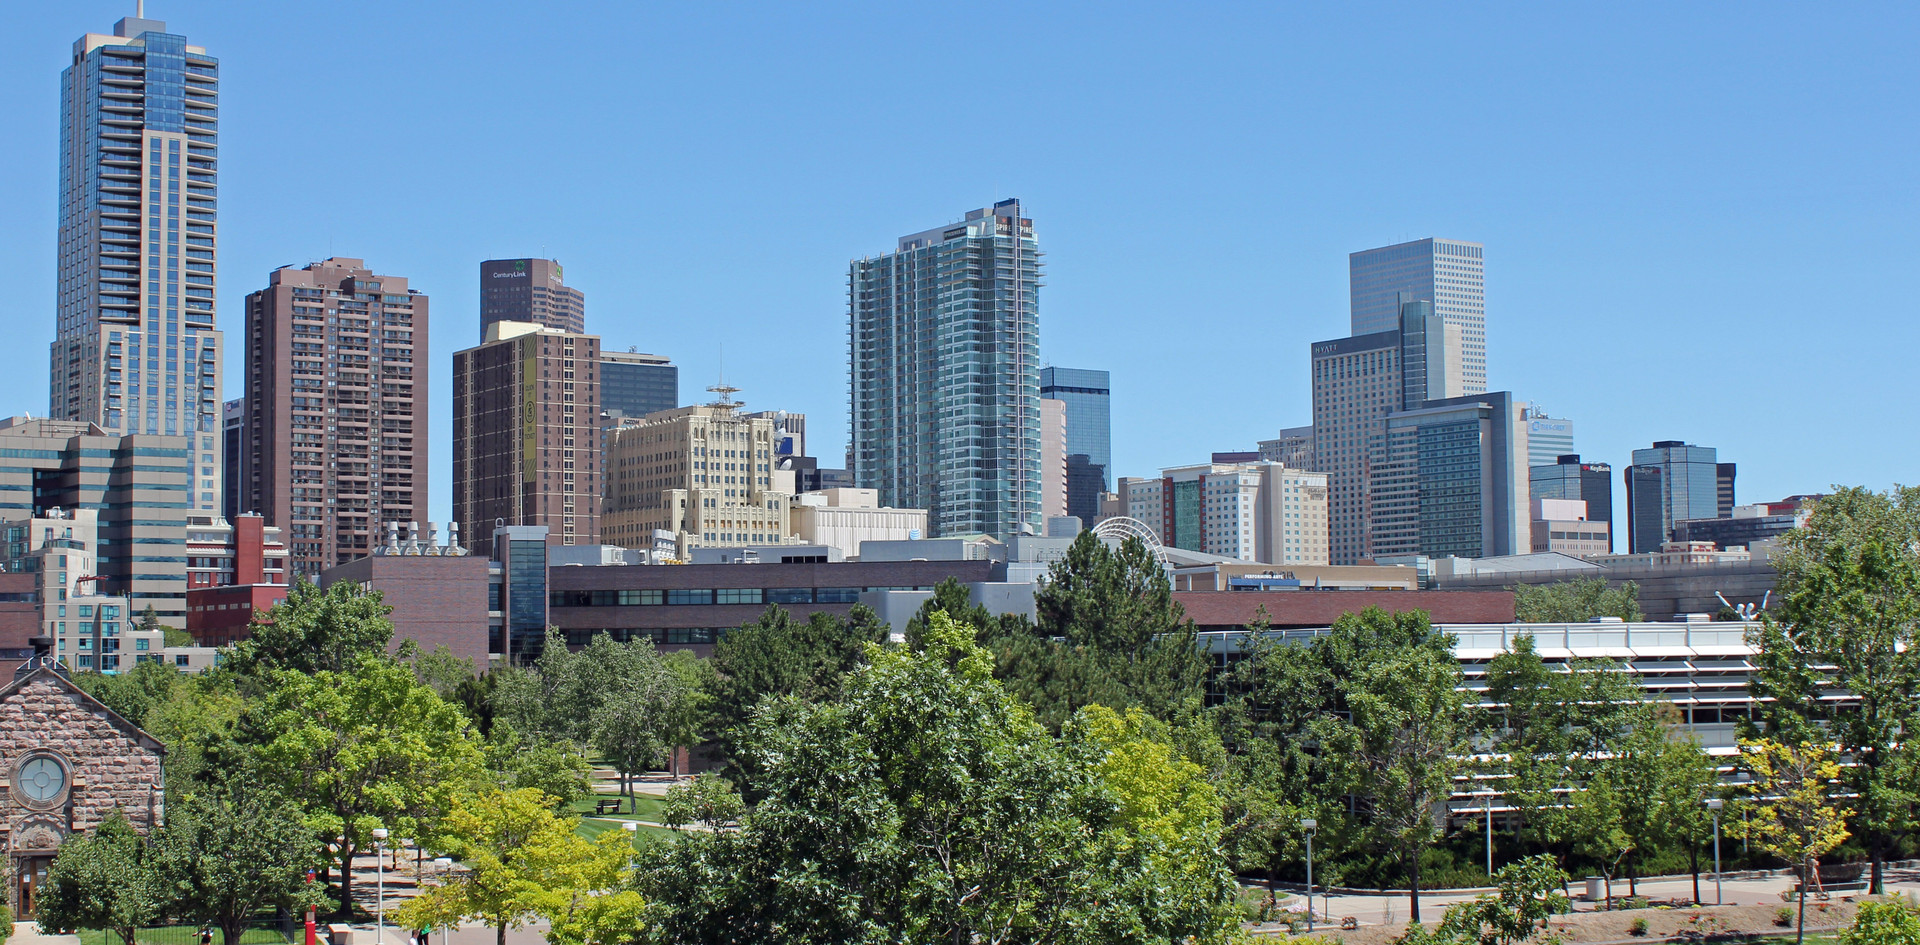 daytime-skyline-of-downtown-denver-color